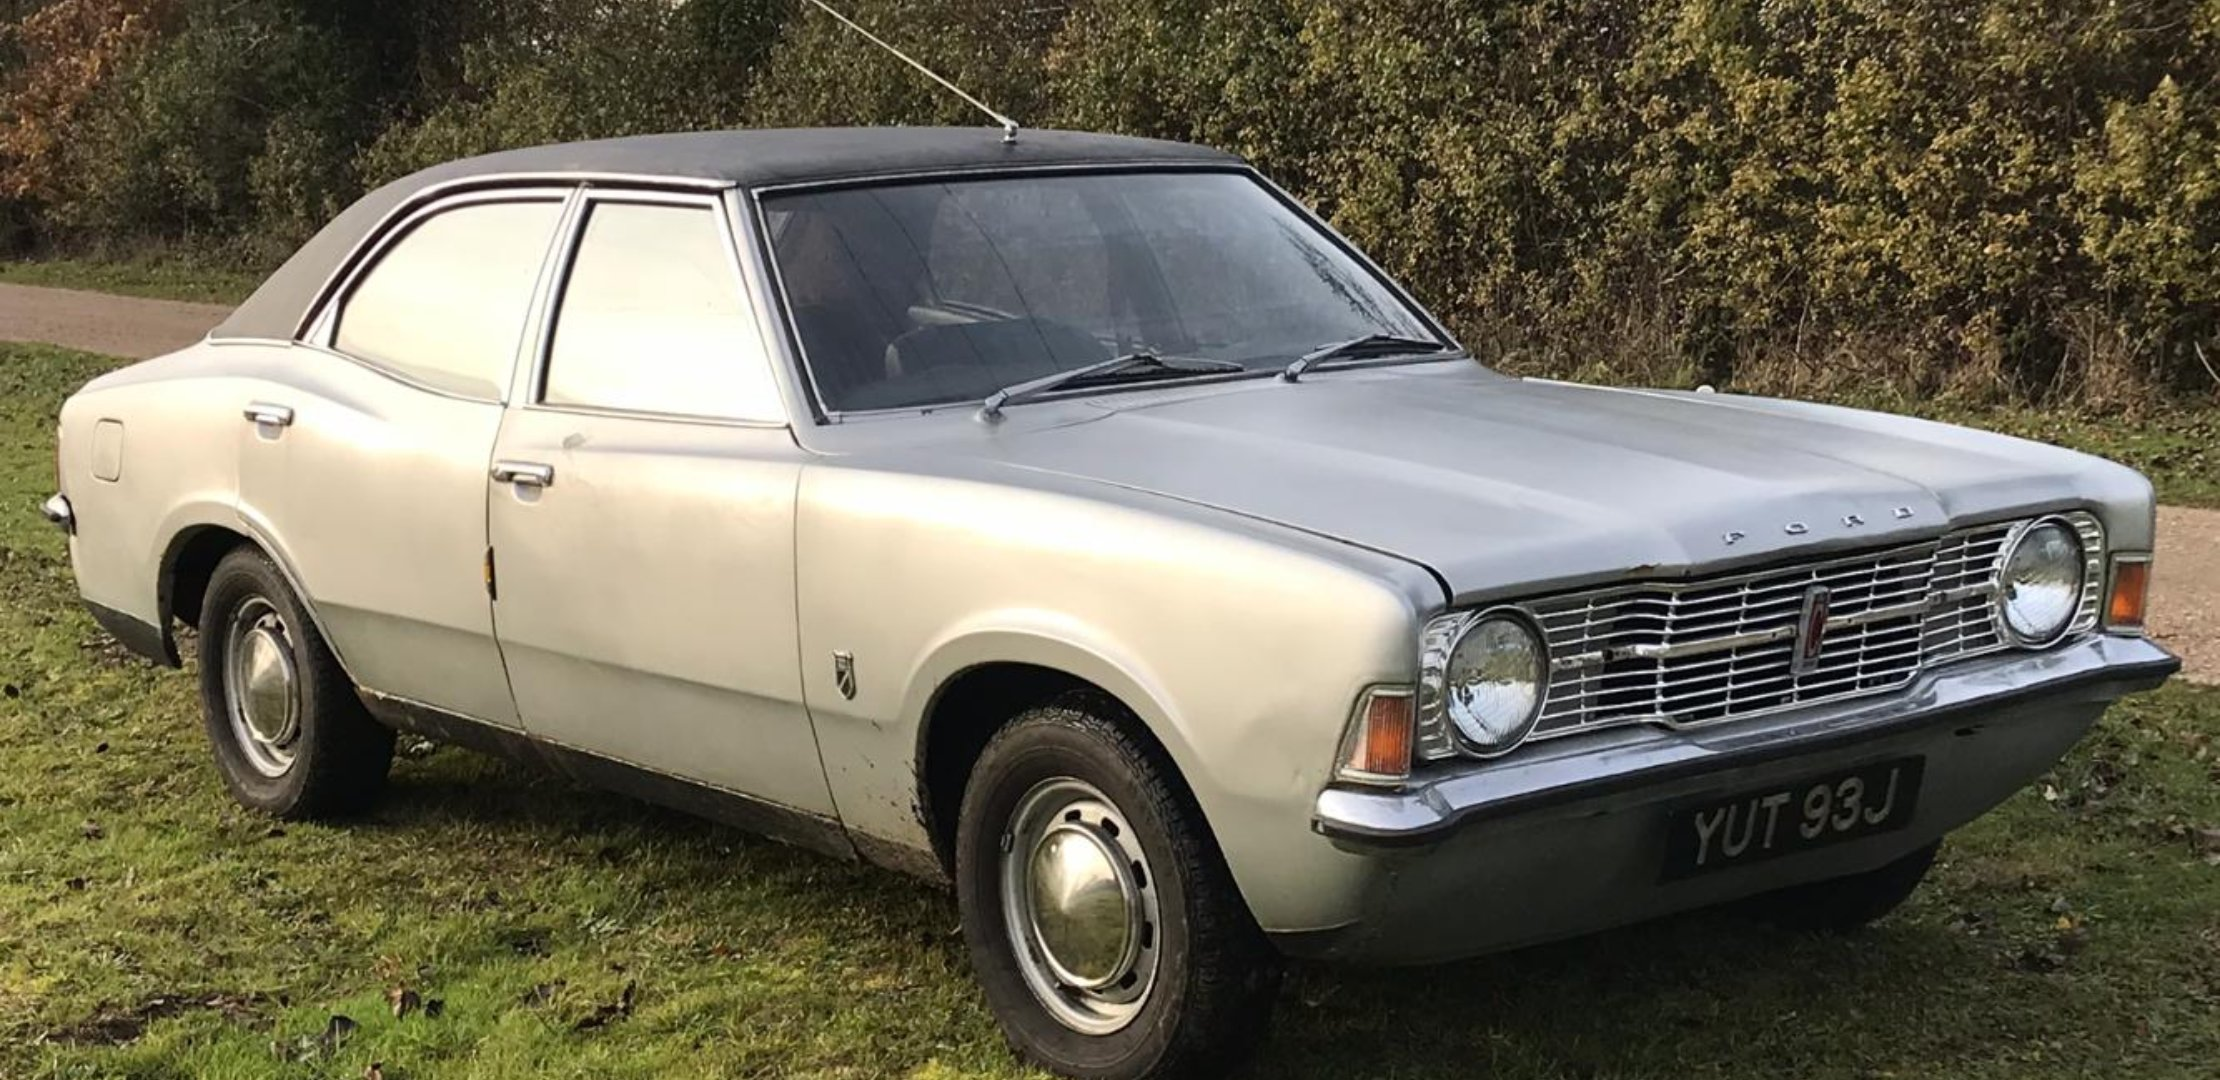 1971 Mk3 Ford Cortina 1600 Base For Sale (picture 1 of 6)